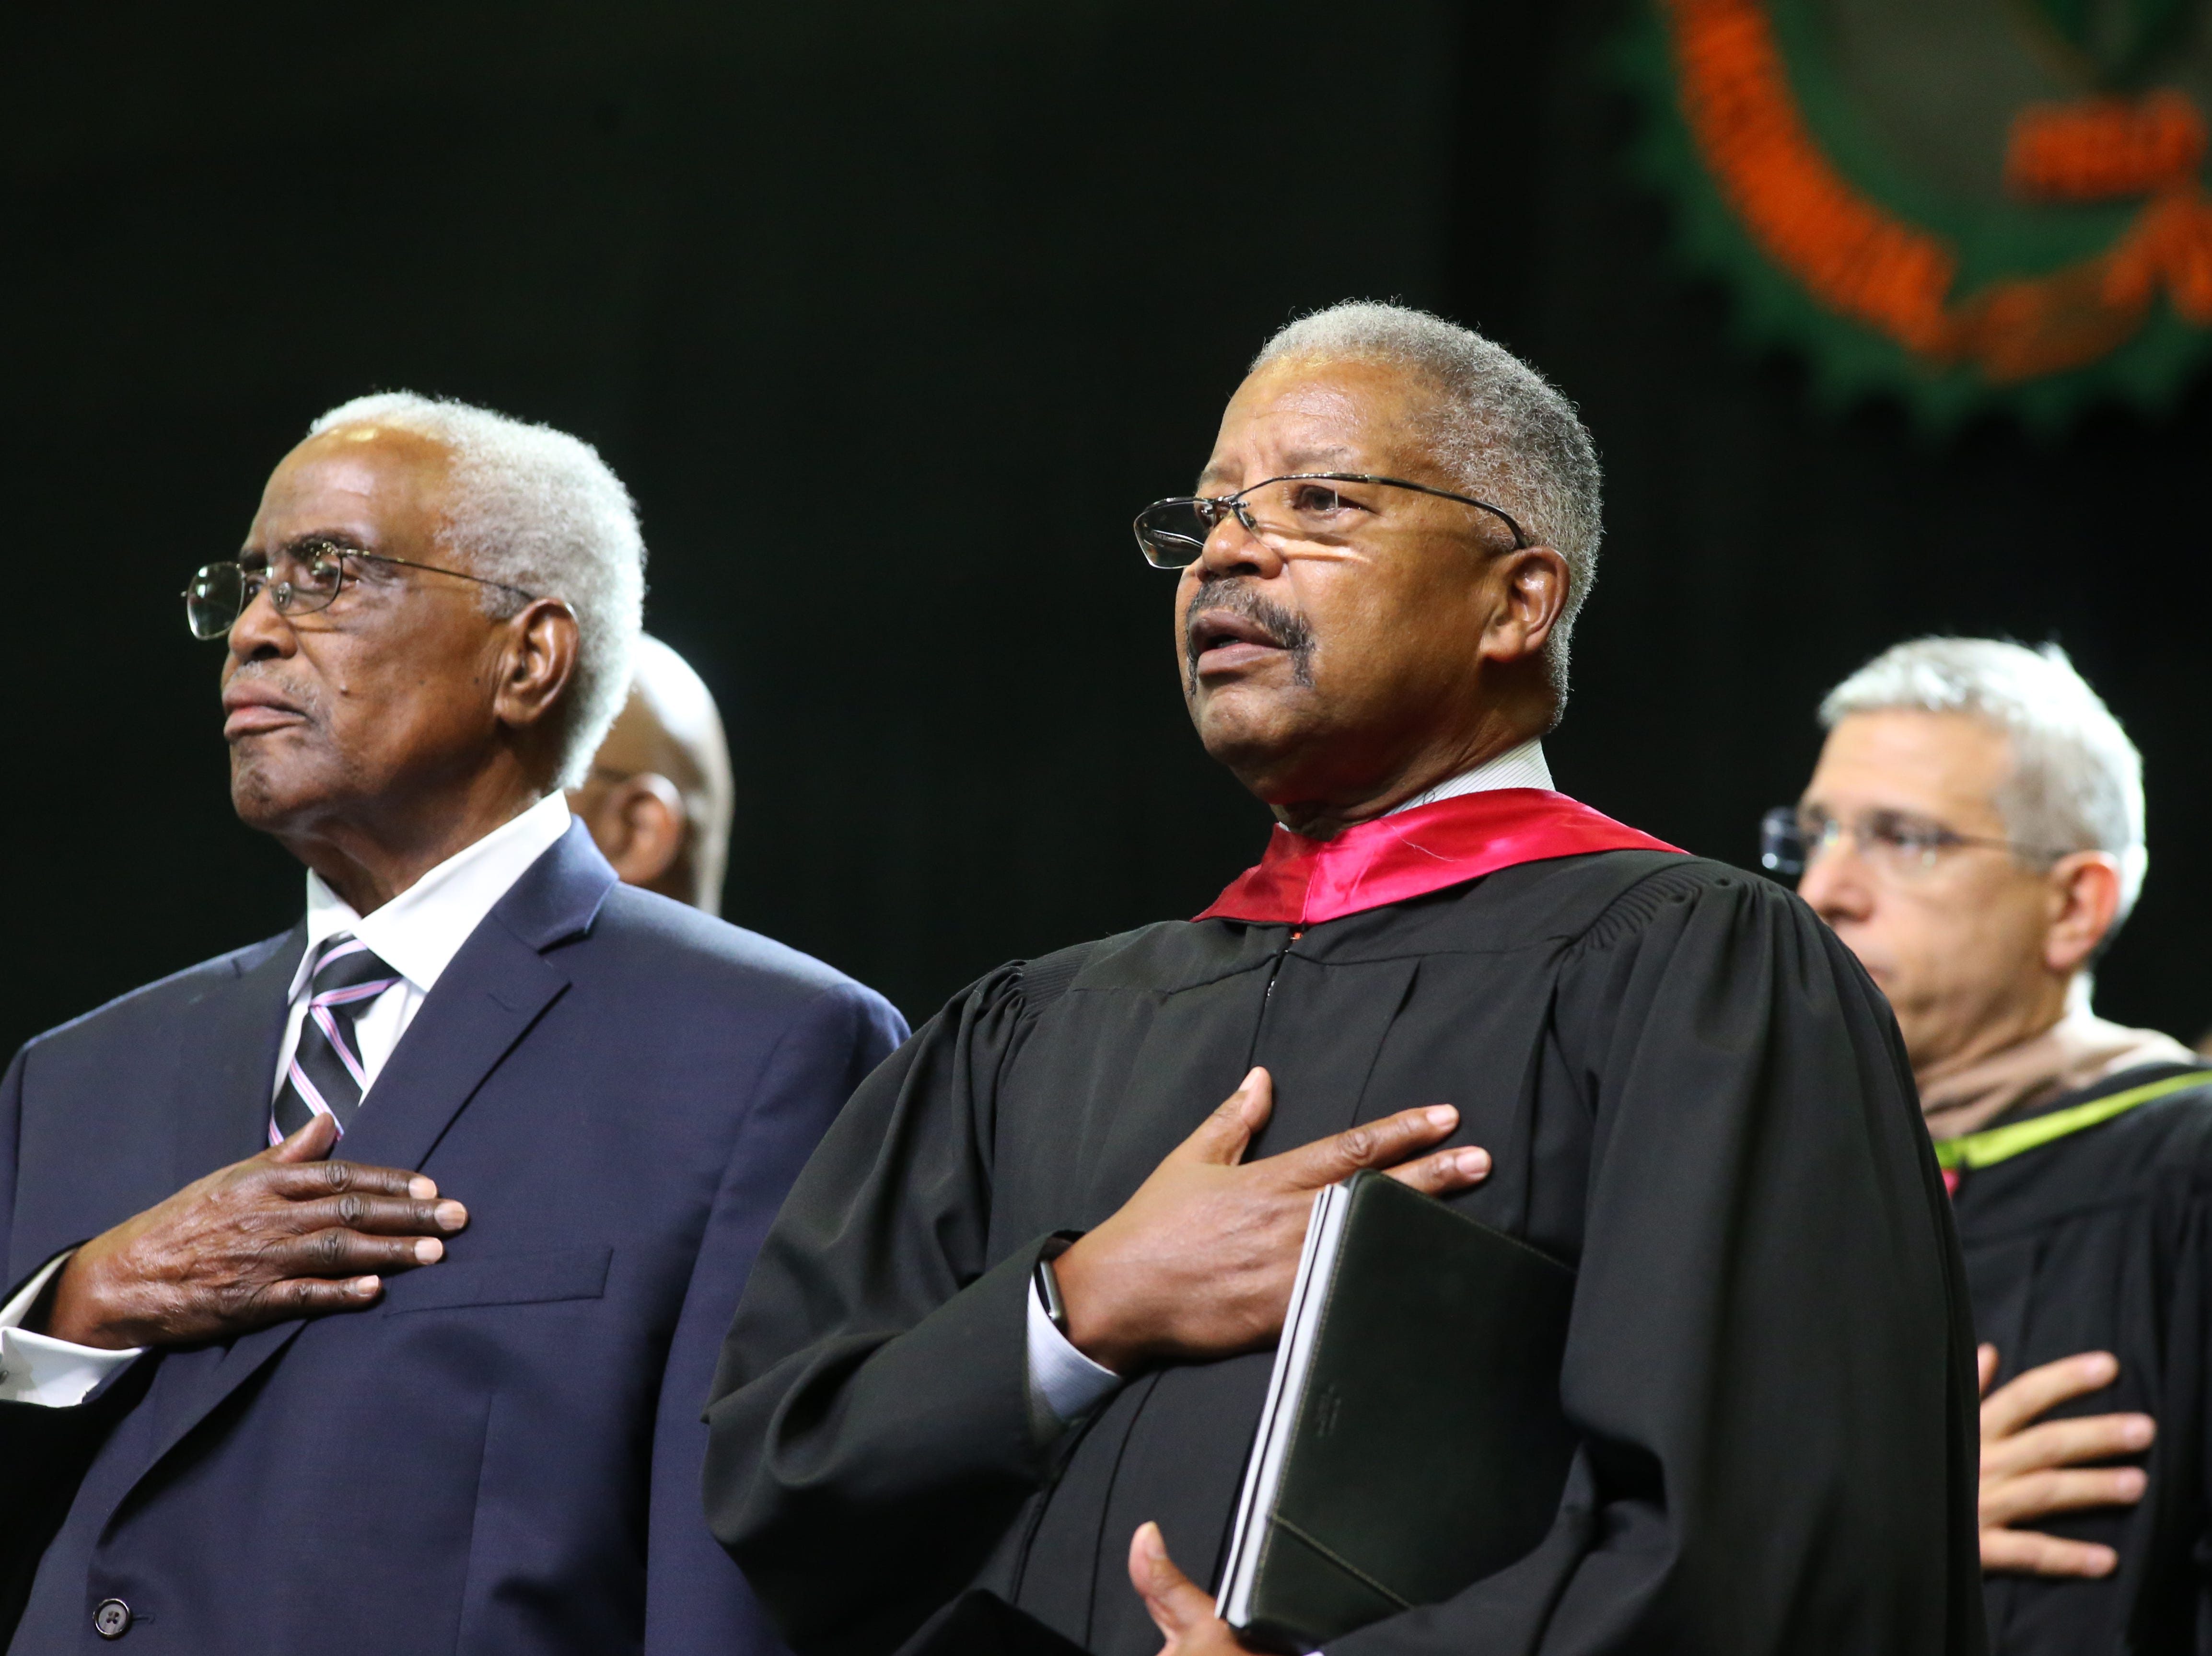 FAMU delegates walk in a processional before President Larry Robinson is inaugurated at the 2018 Presidents' Inauguration held in the Lawson Center on Friday, Nov. 9, 2018.